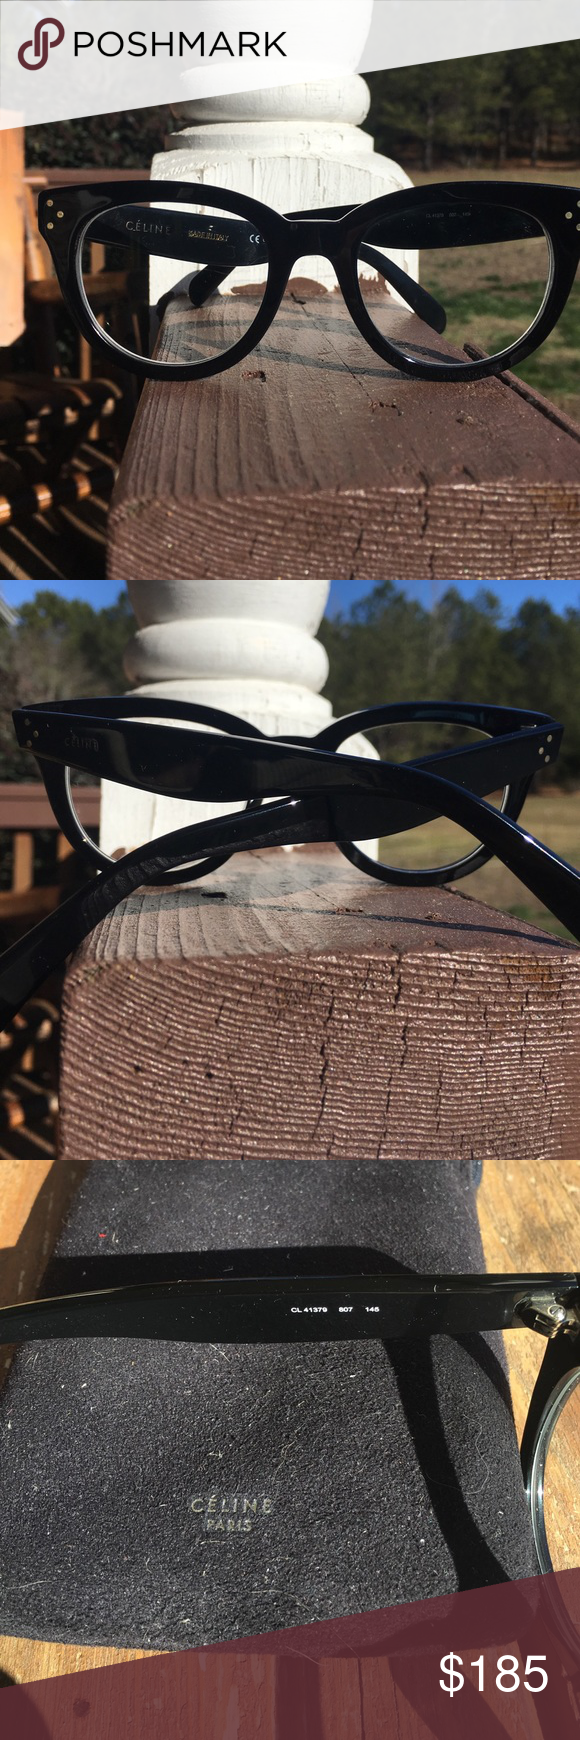 41a539d58a00 CELINE ANNA CL 41379 EYEGLASSES Absolutely on the fence about letting these  go...Amazing pair of authentic Celine ANNA eyeglasses in black gold  hardware.